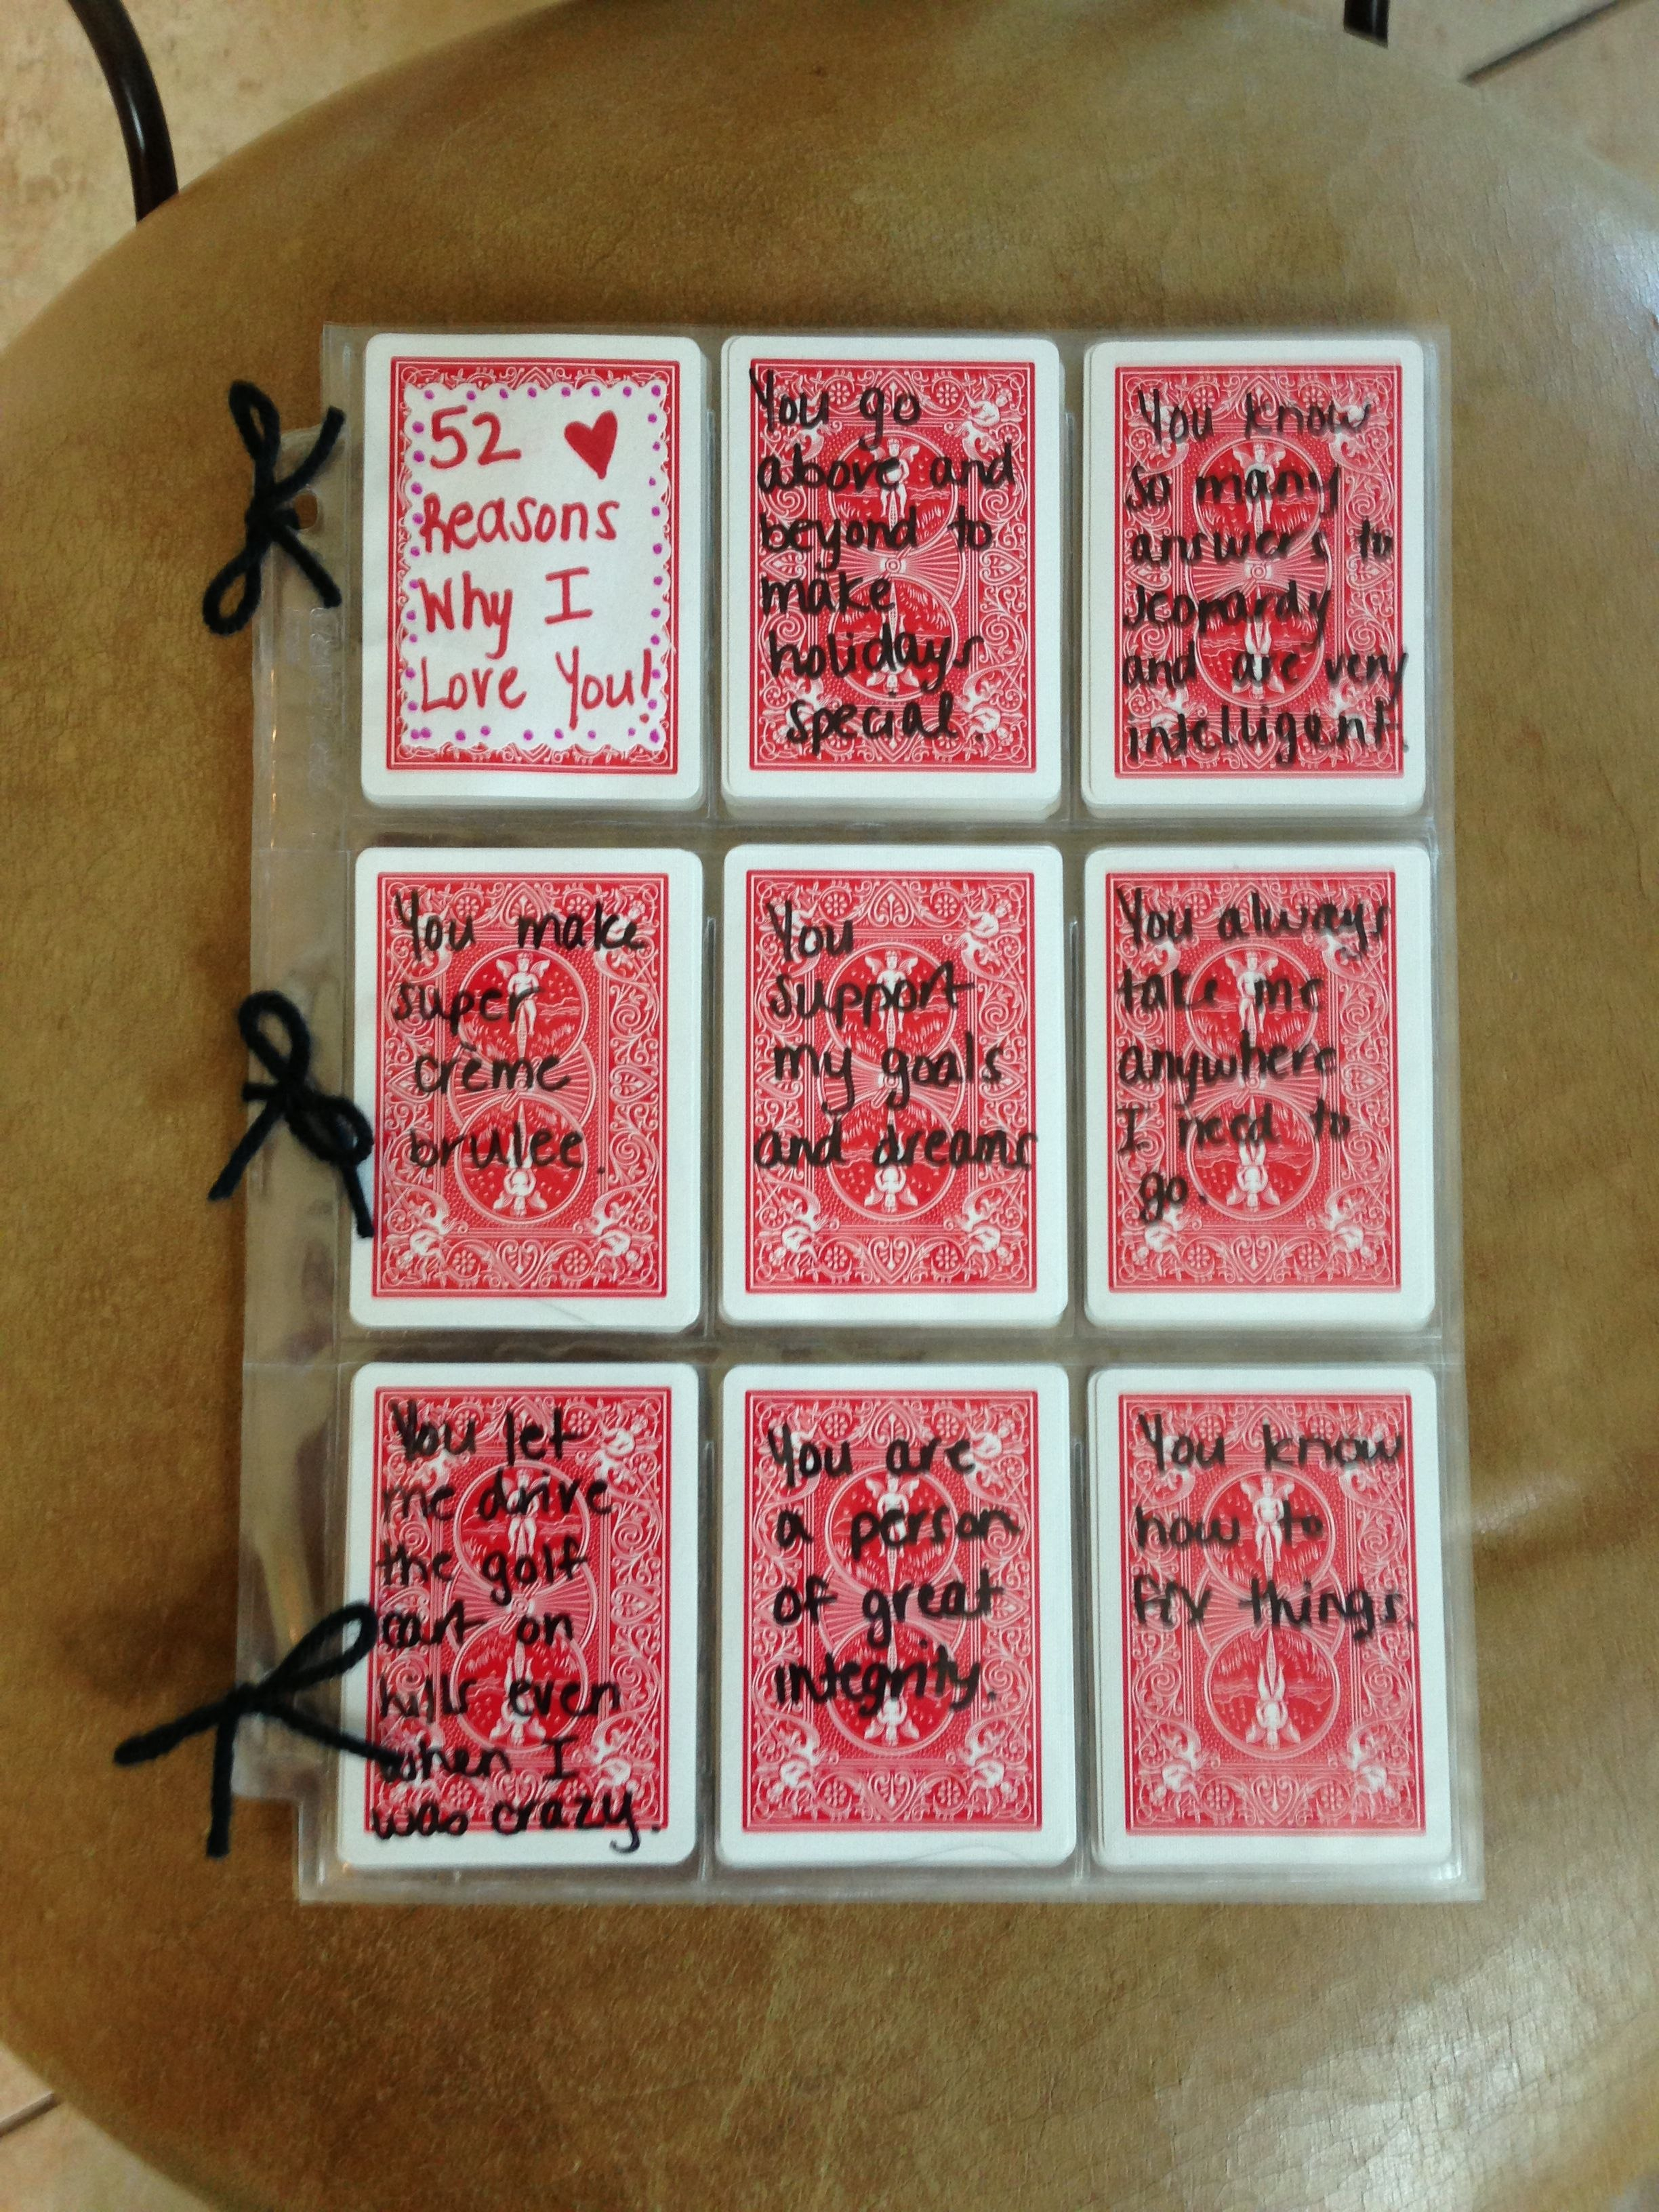 Reasons Why I Love You Ideas  Examples And Forms In 52 Reasons Why I Love You Cards Templates